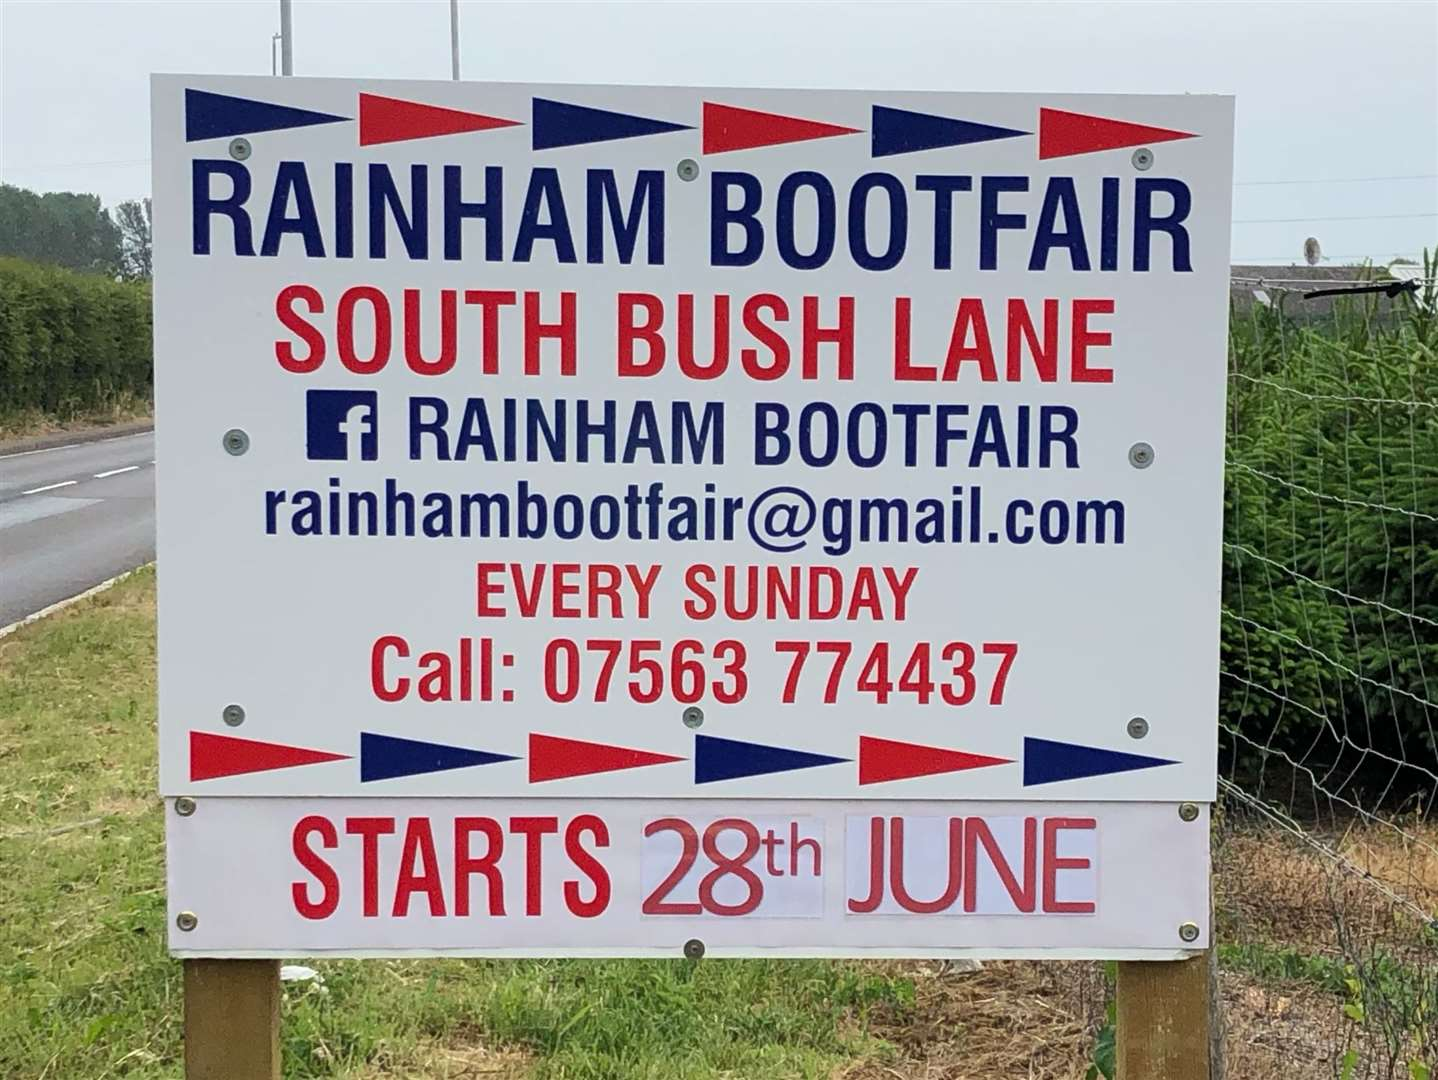 Rainham Bootfair plans to expand on its current offering in South Bush Lane with a wider programme of events